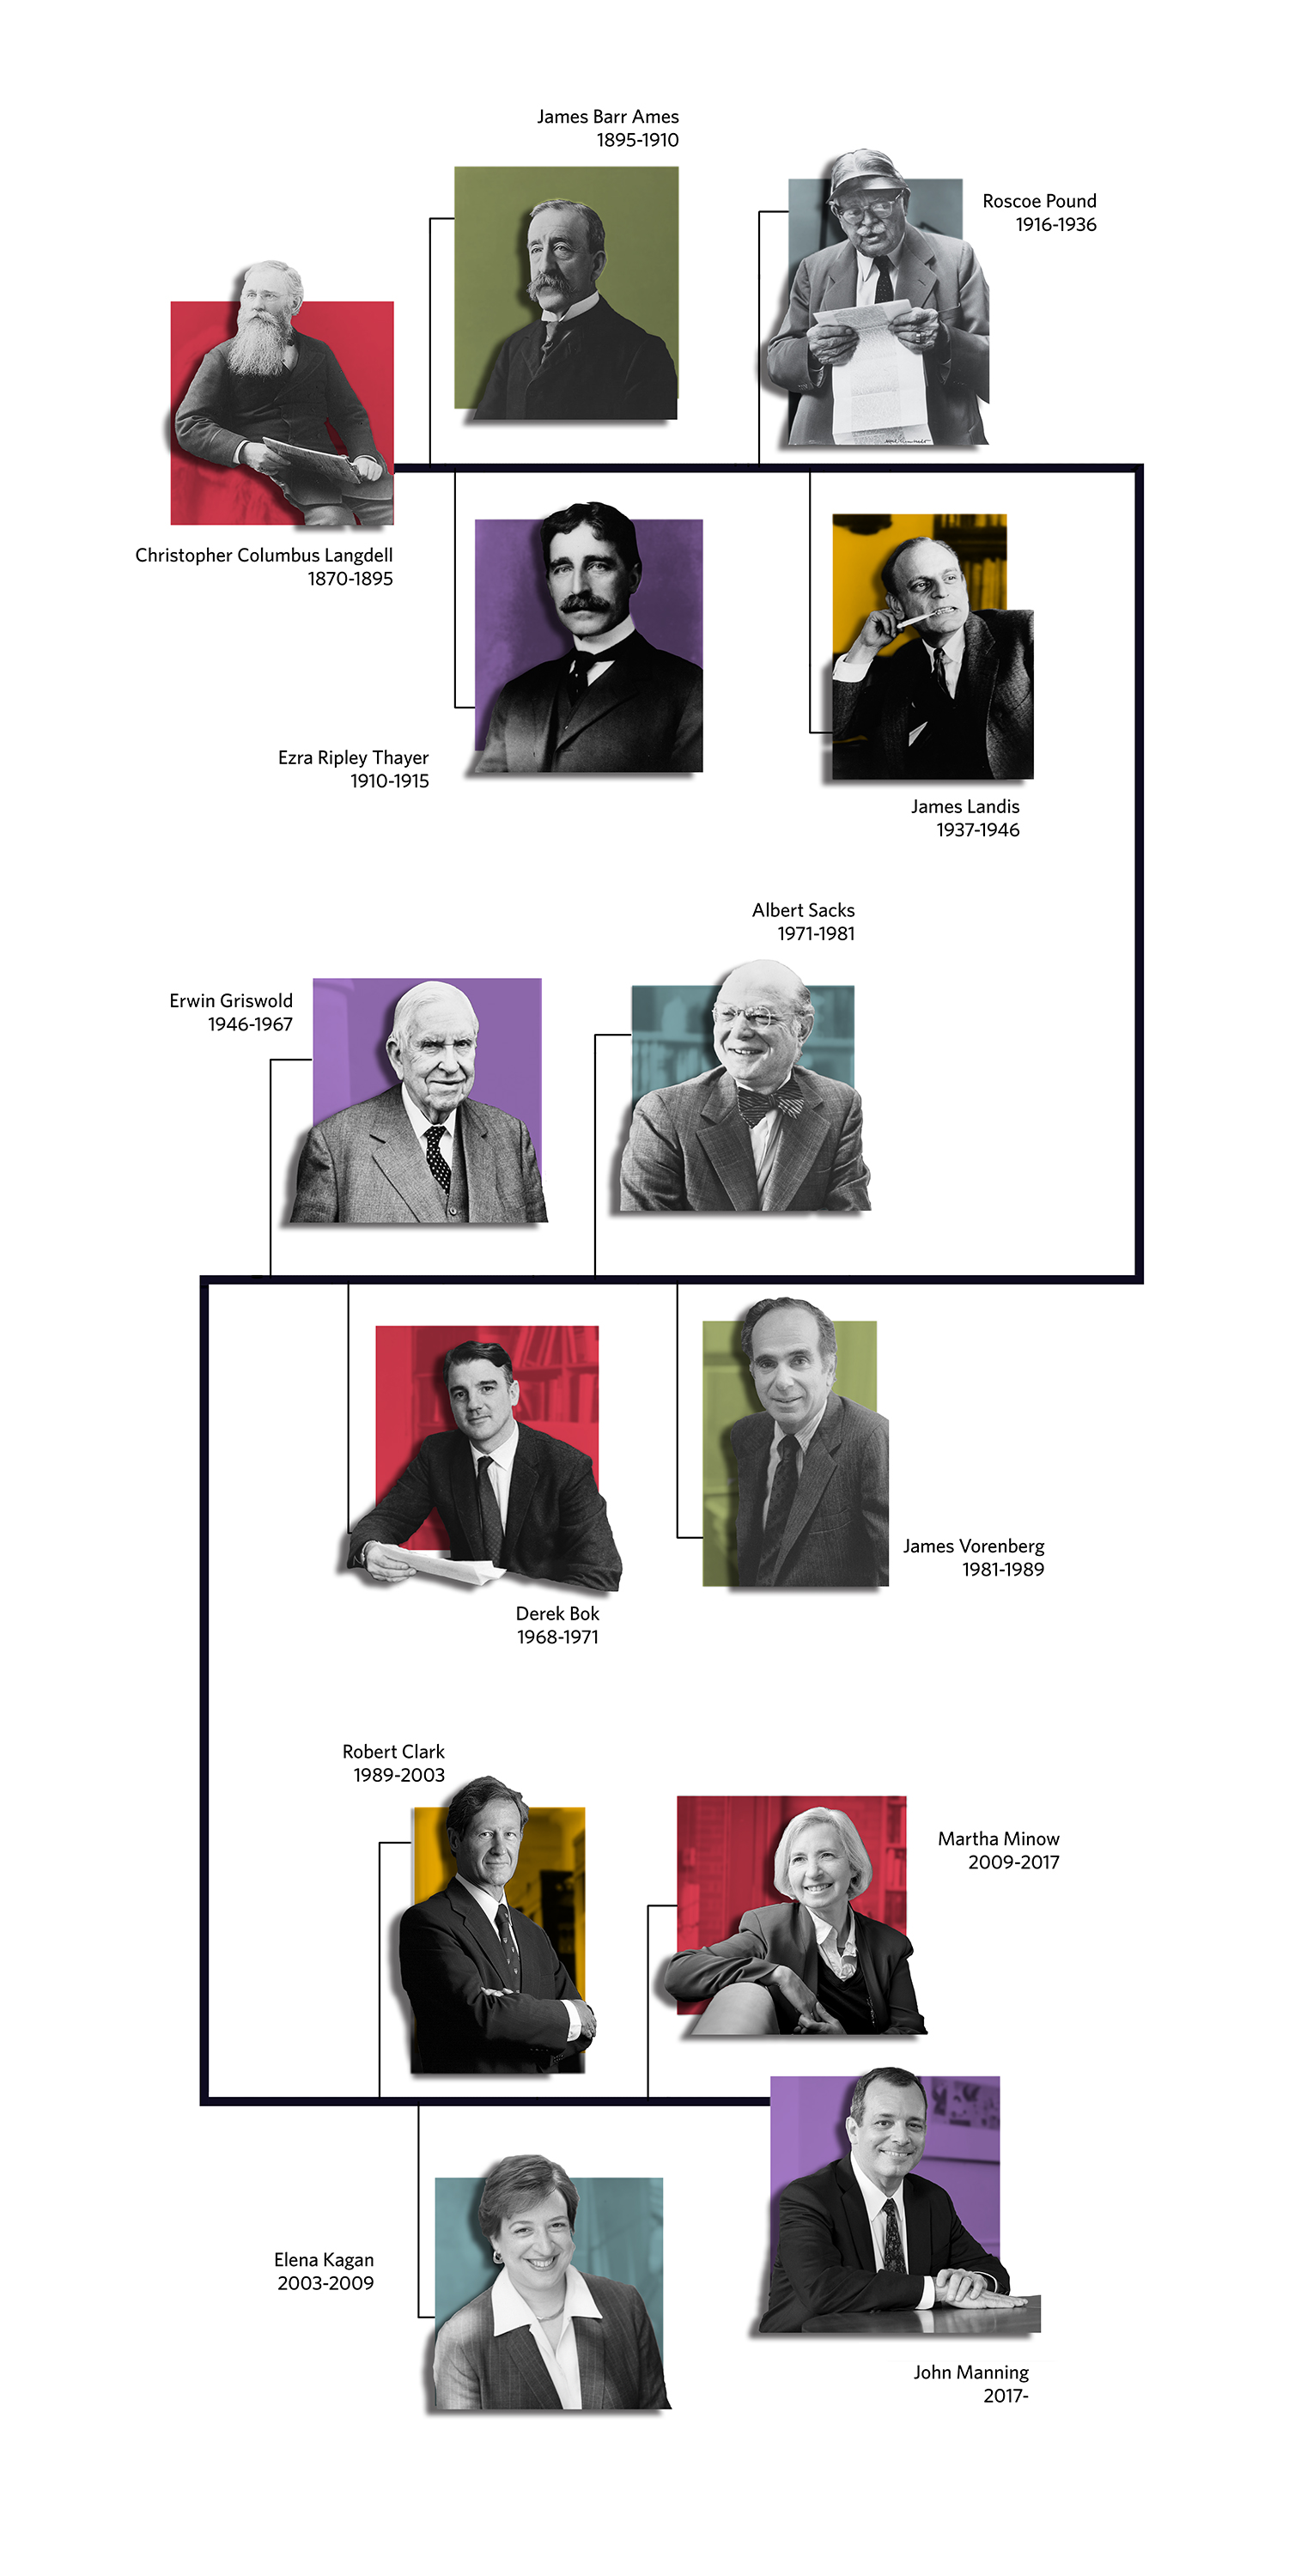 Chart of HLS deans in chronological order